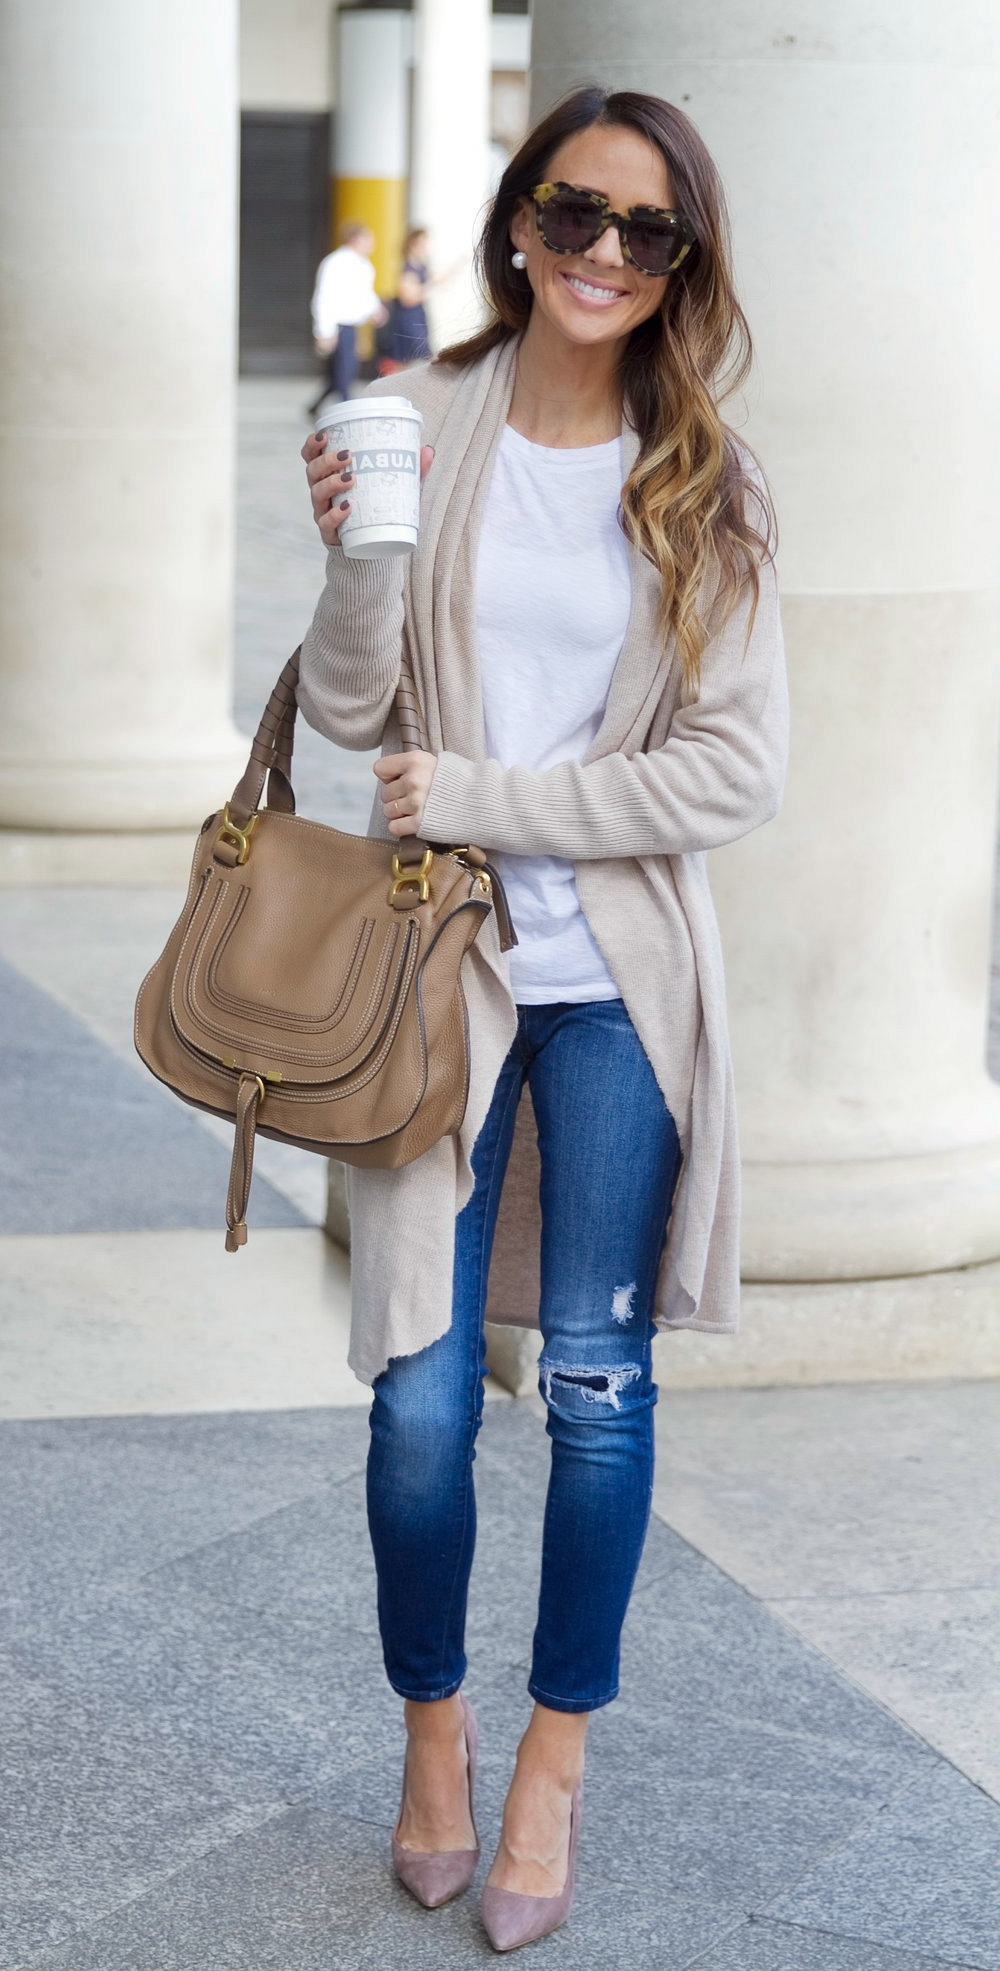 35 Stylish Outfit Ideas for Women - Outfit Inspirations ...